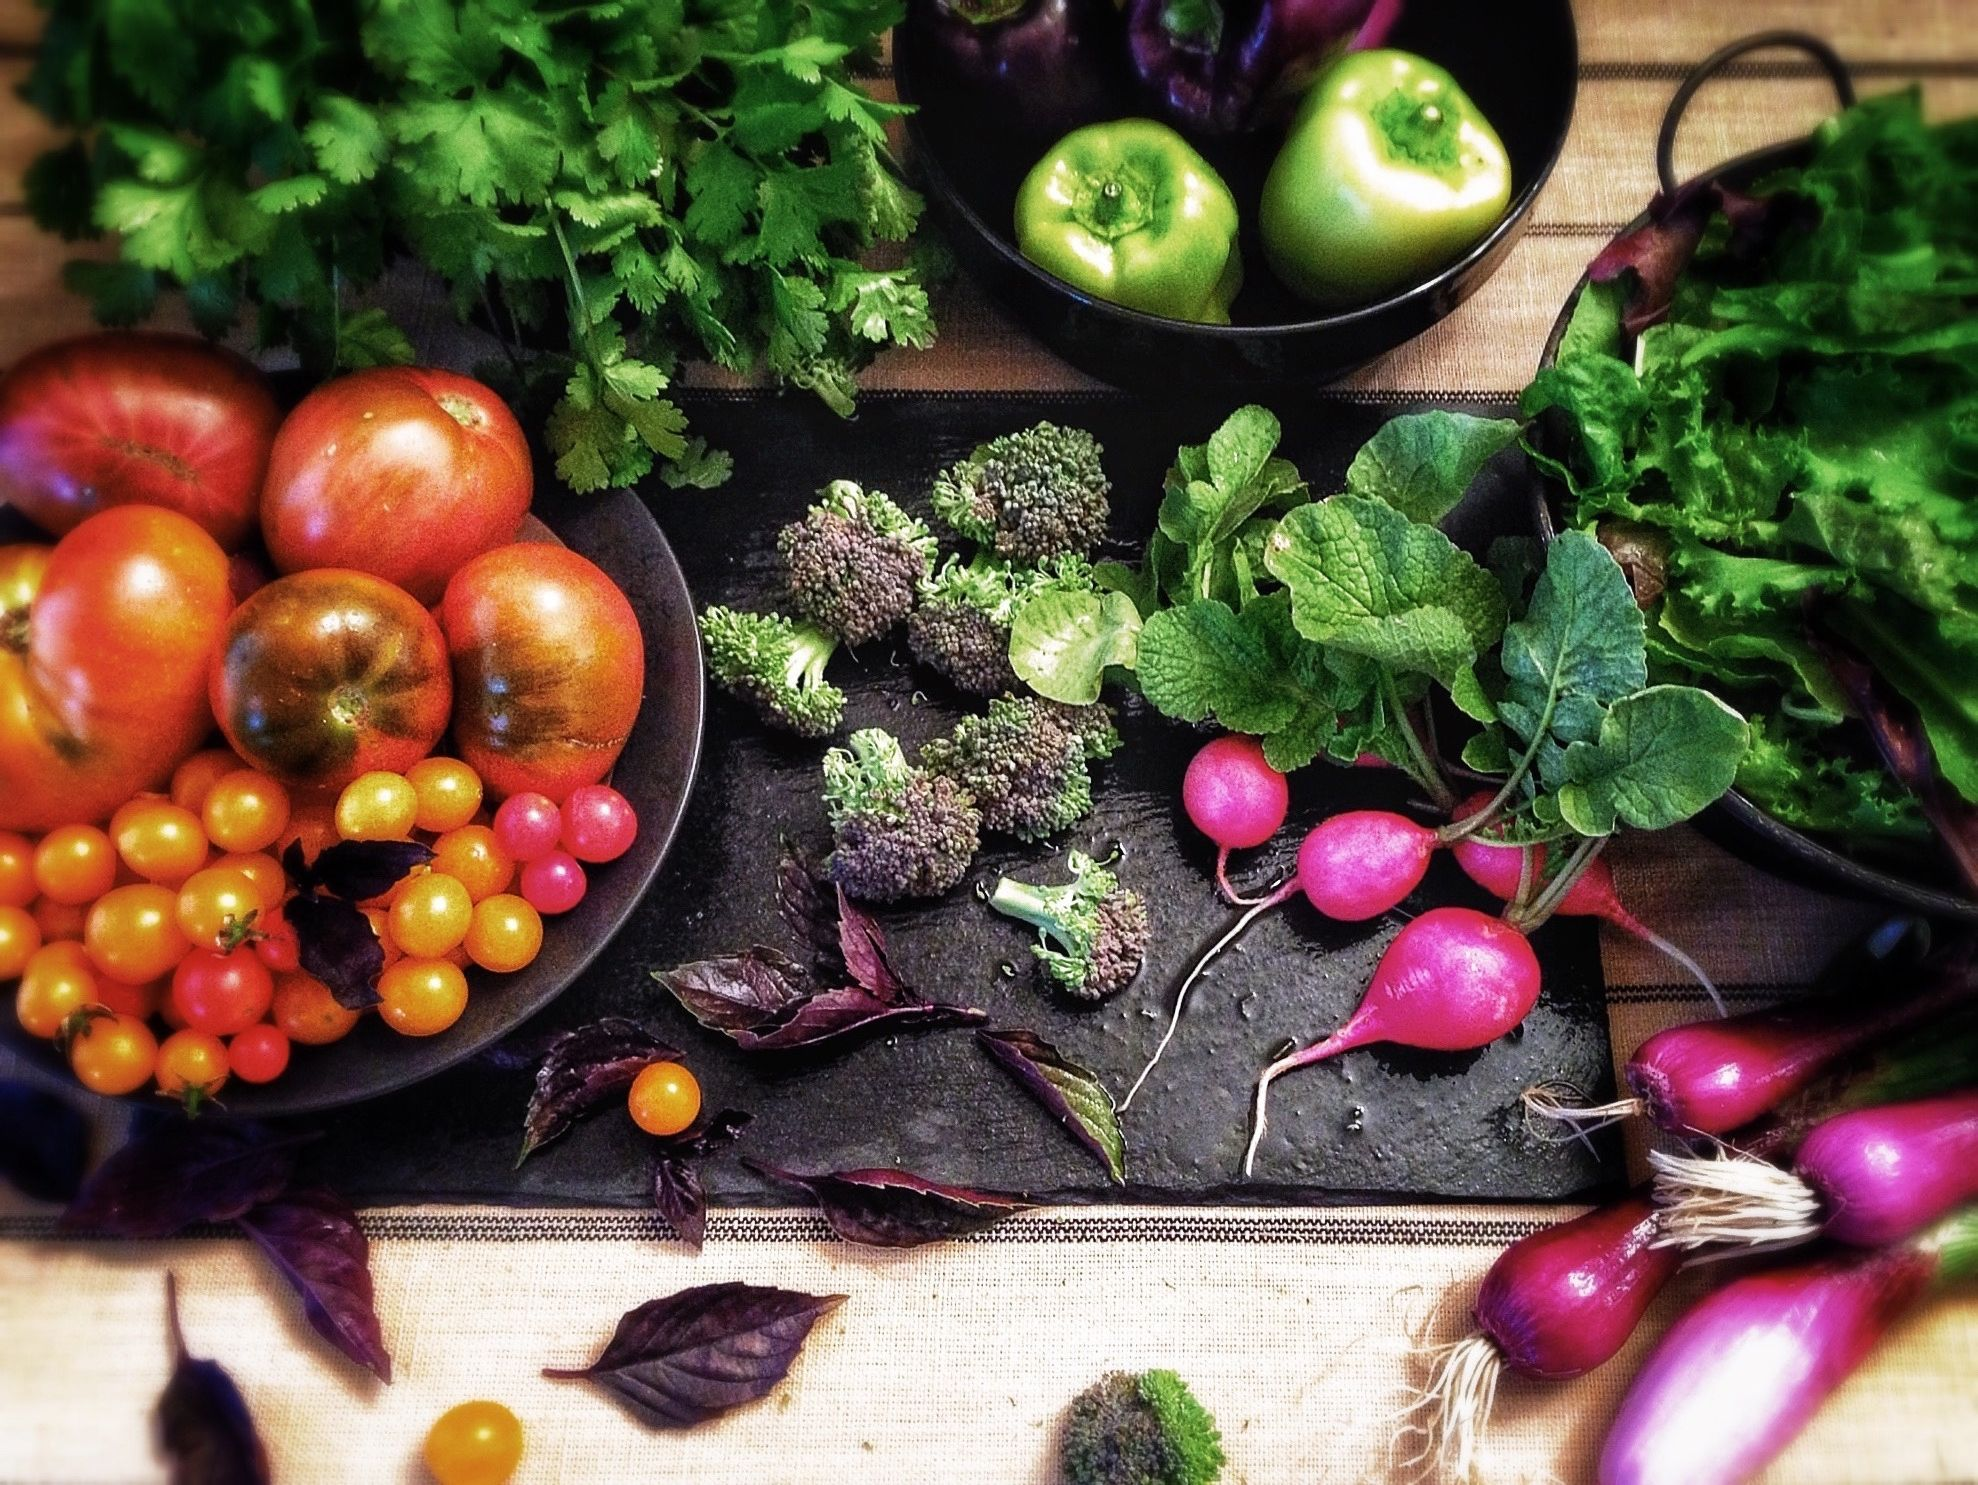 What Vegetables are in Season? Spring!